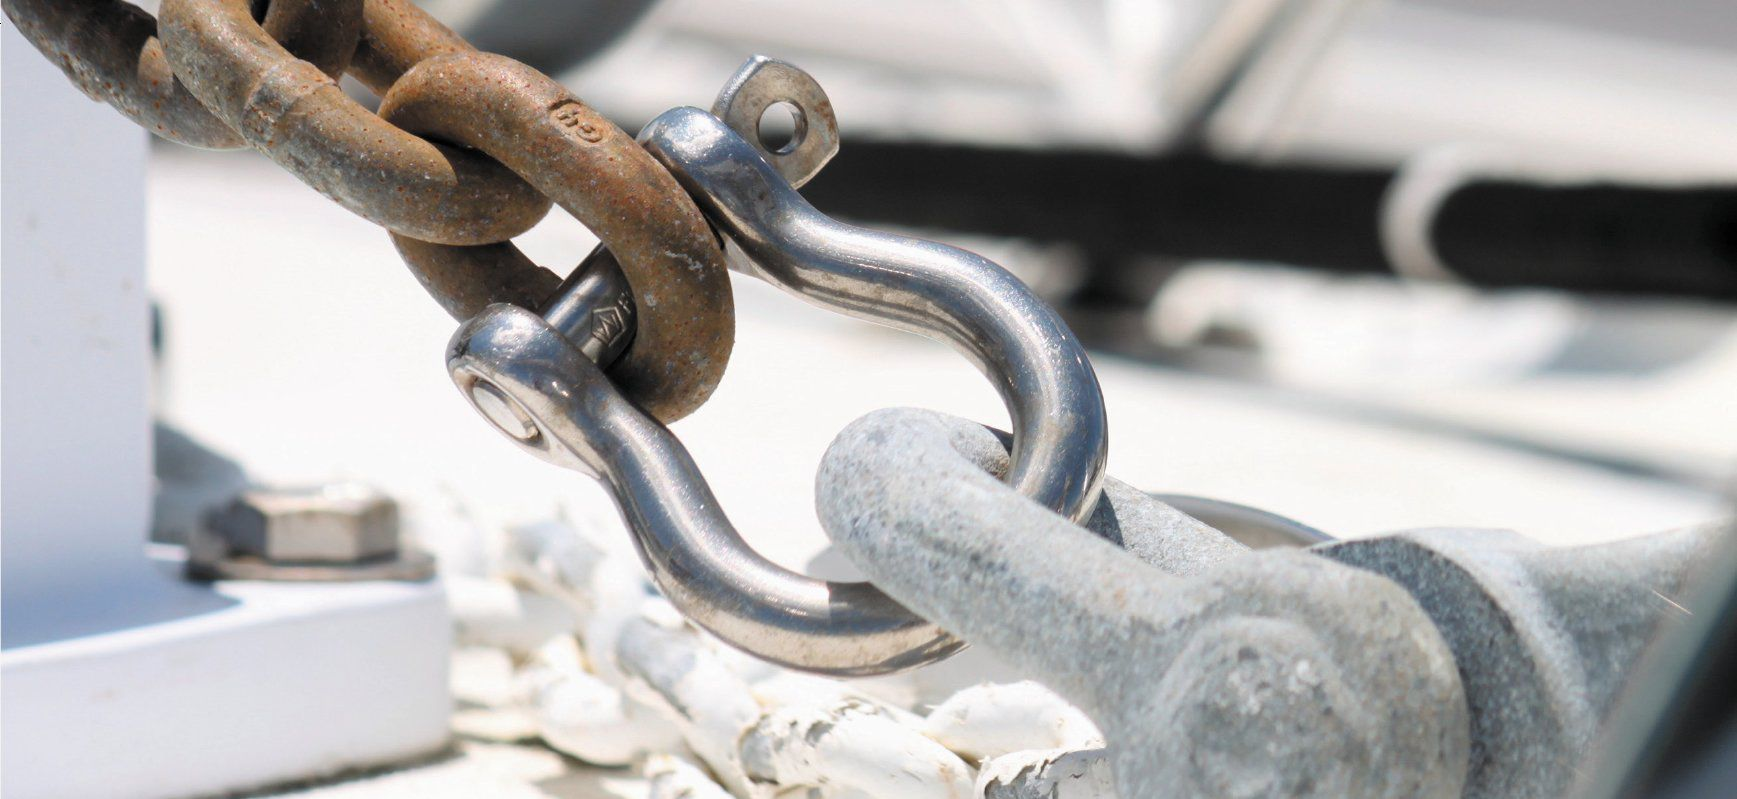 Stainless-steel shackles